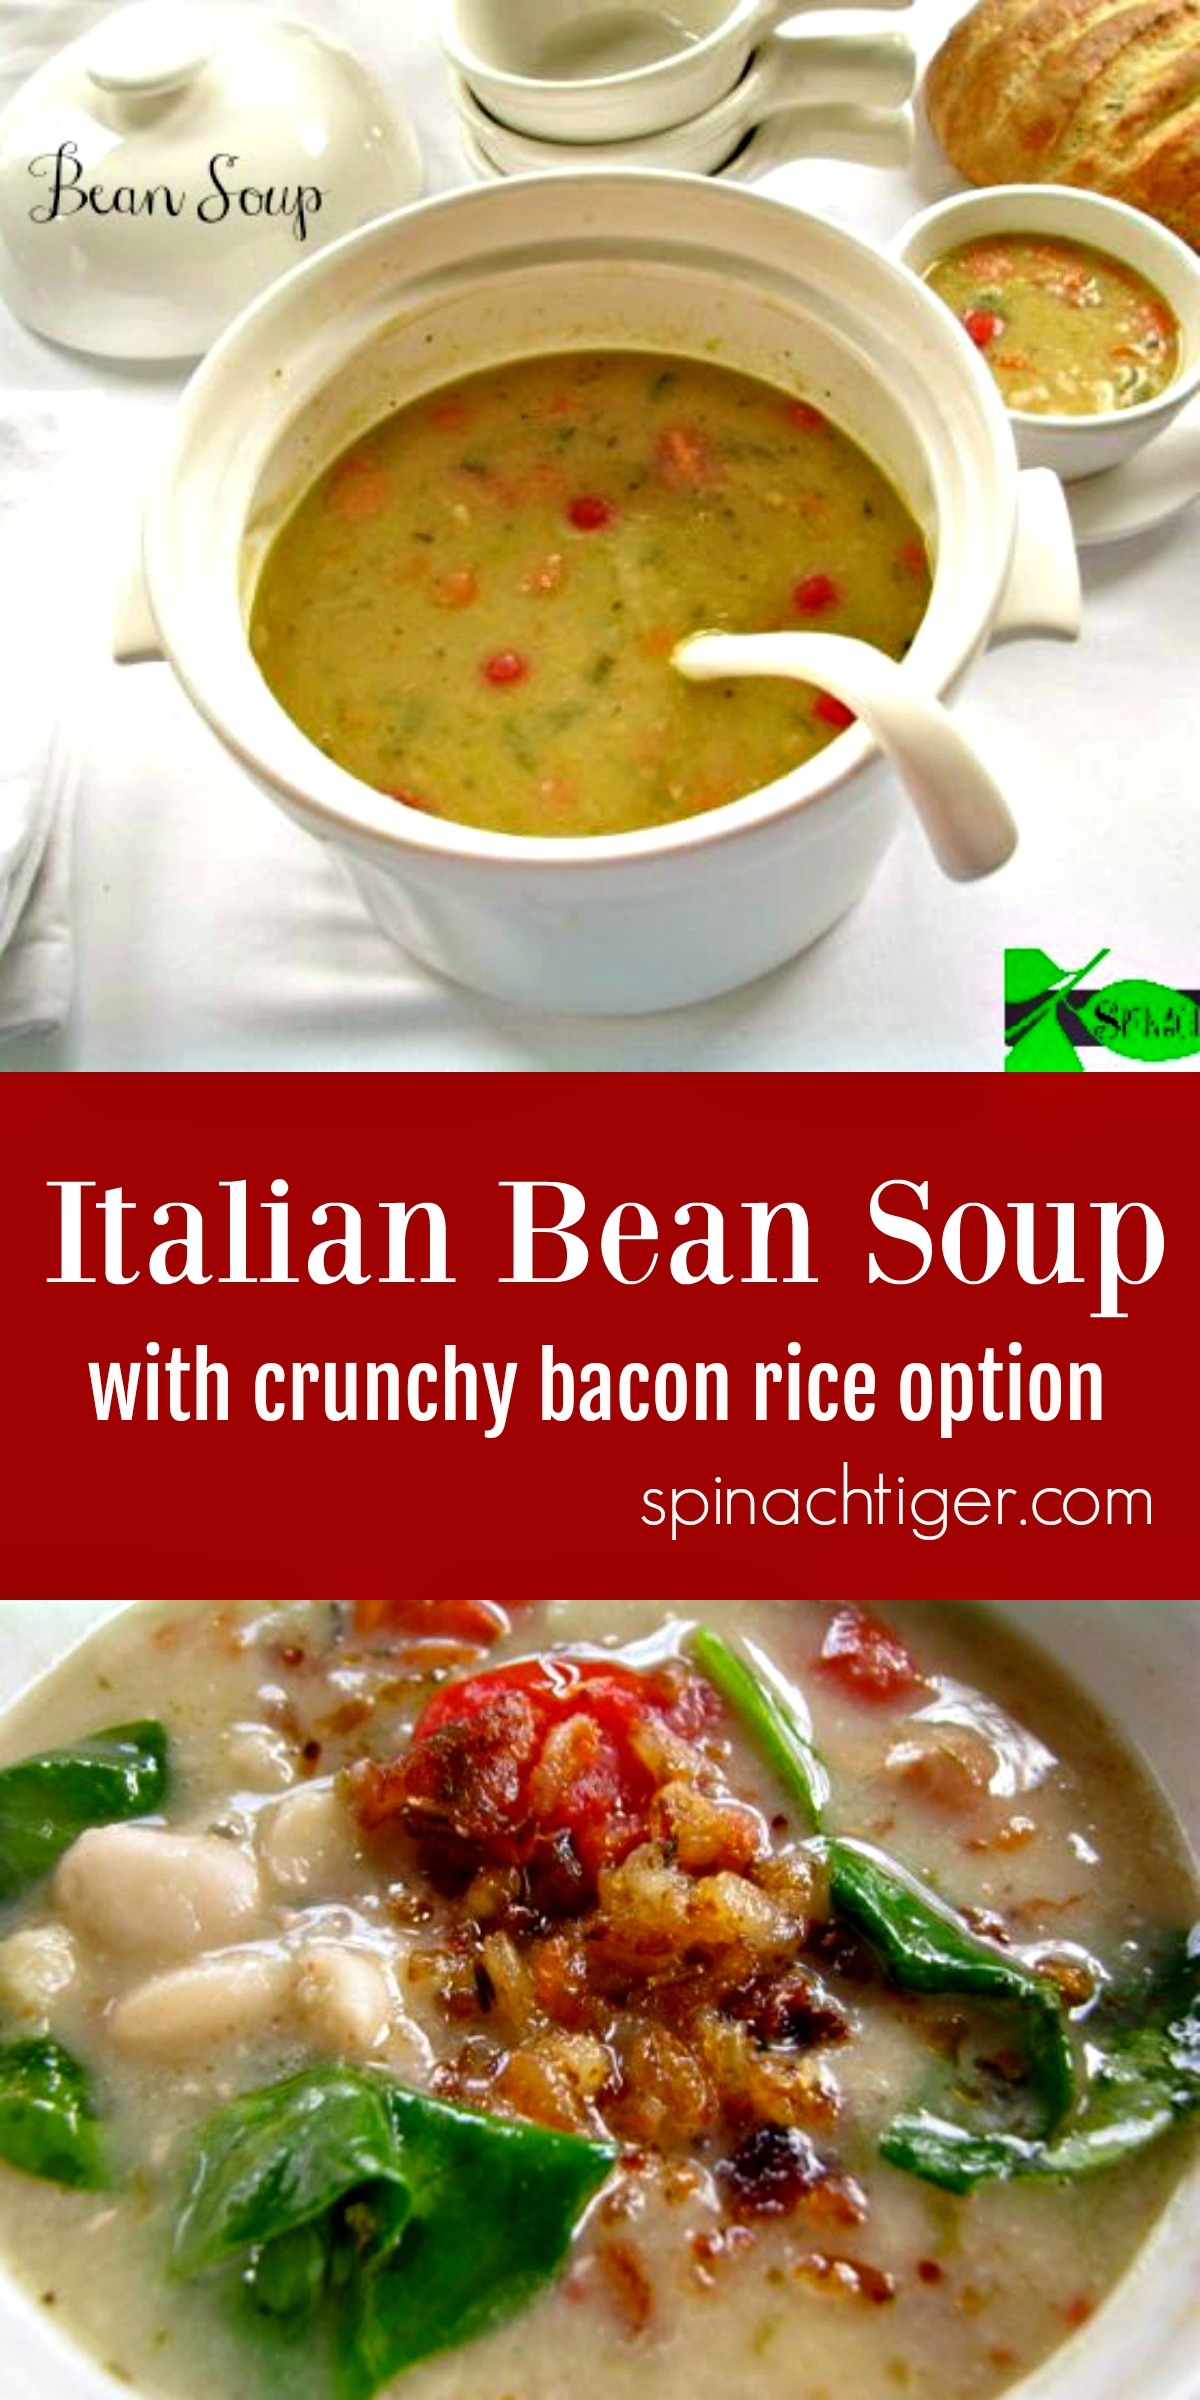 How to Make Italian Bean Soup from Spinach Tiger